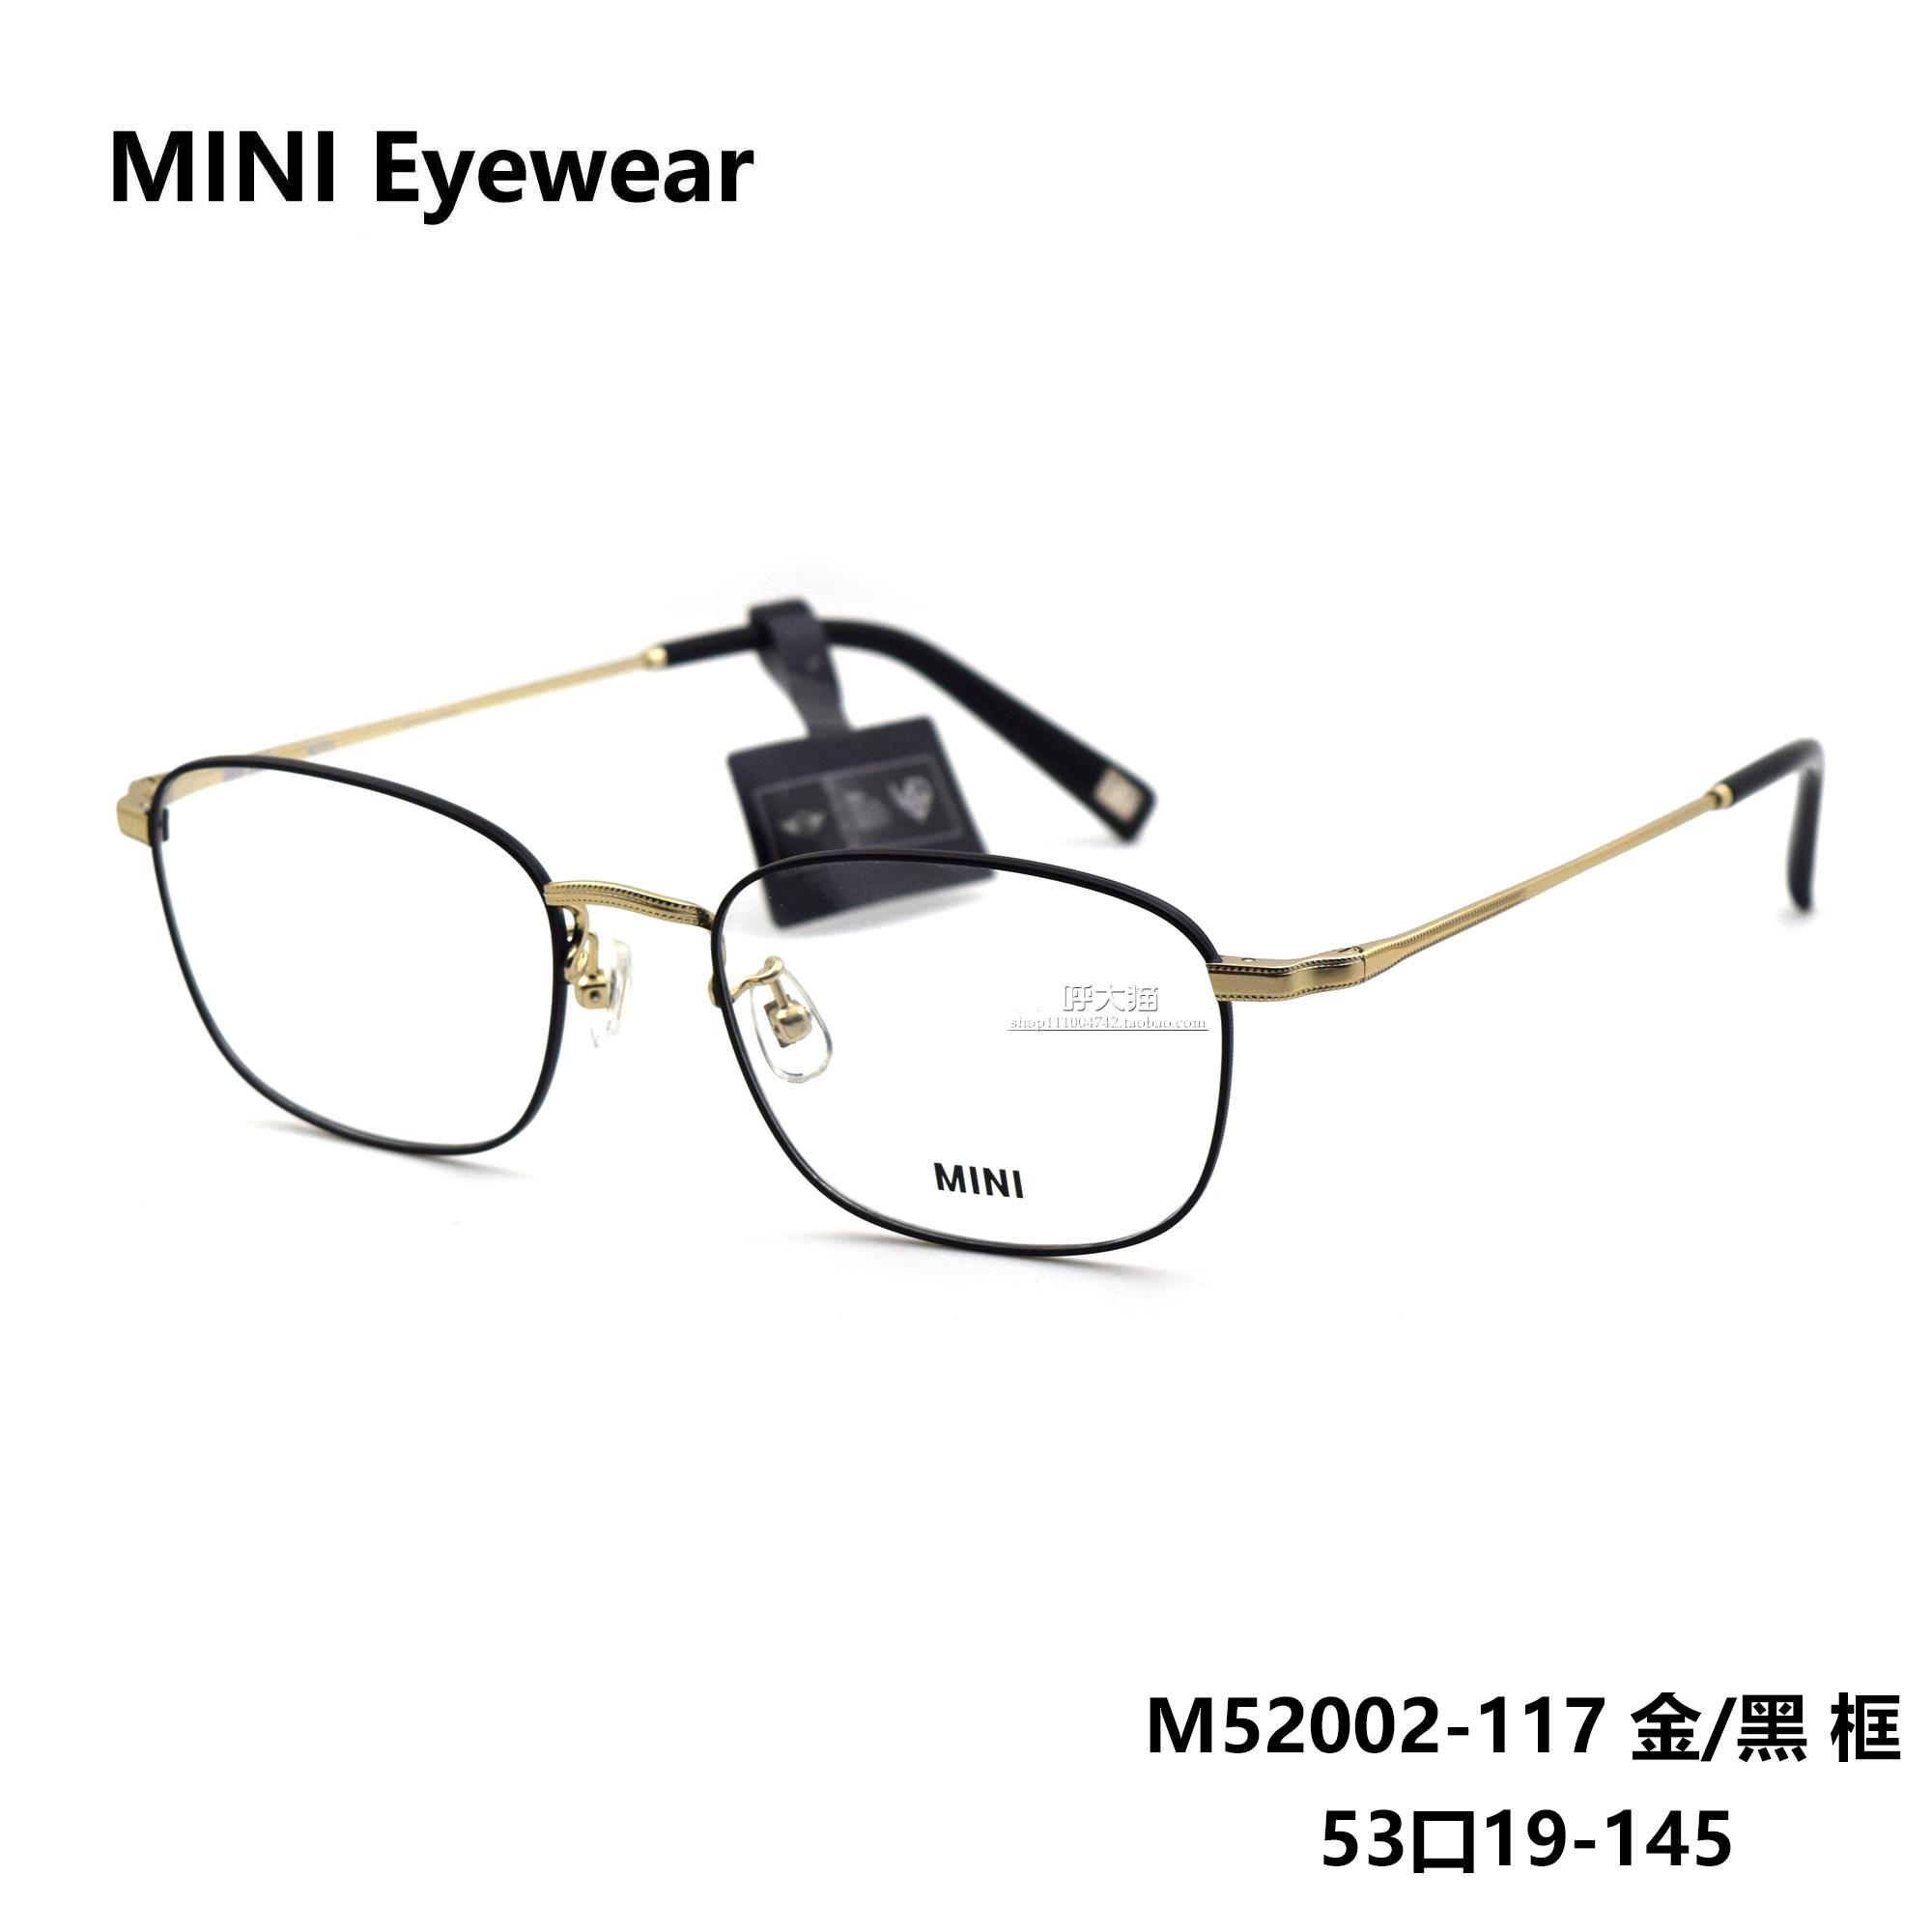 New authentic MINI, BMW glasses, men and women, retro round frame, metal optical frame, M52002